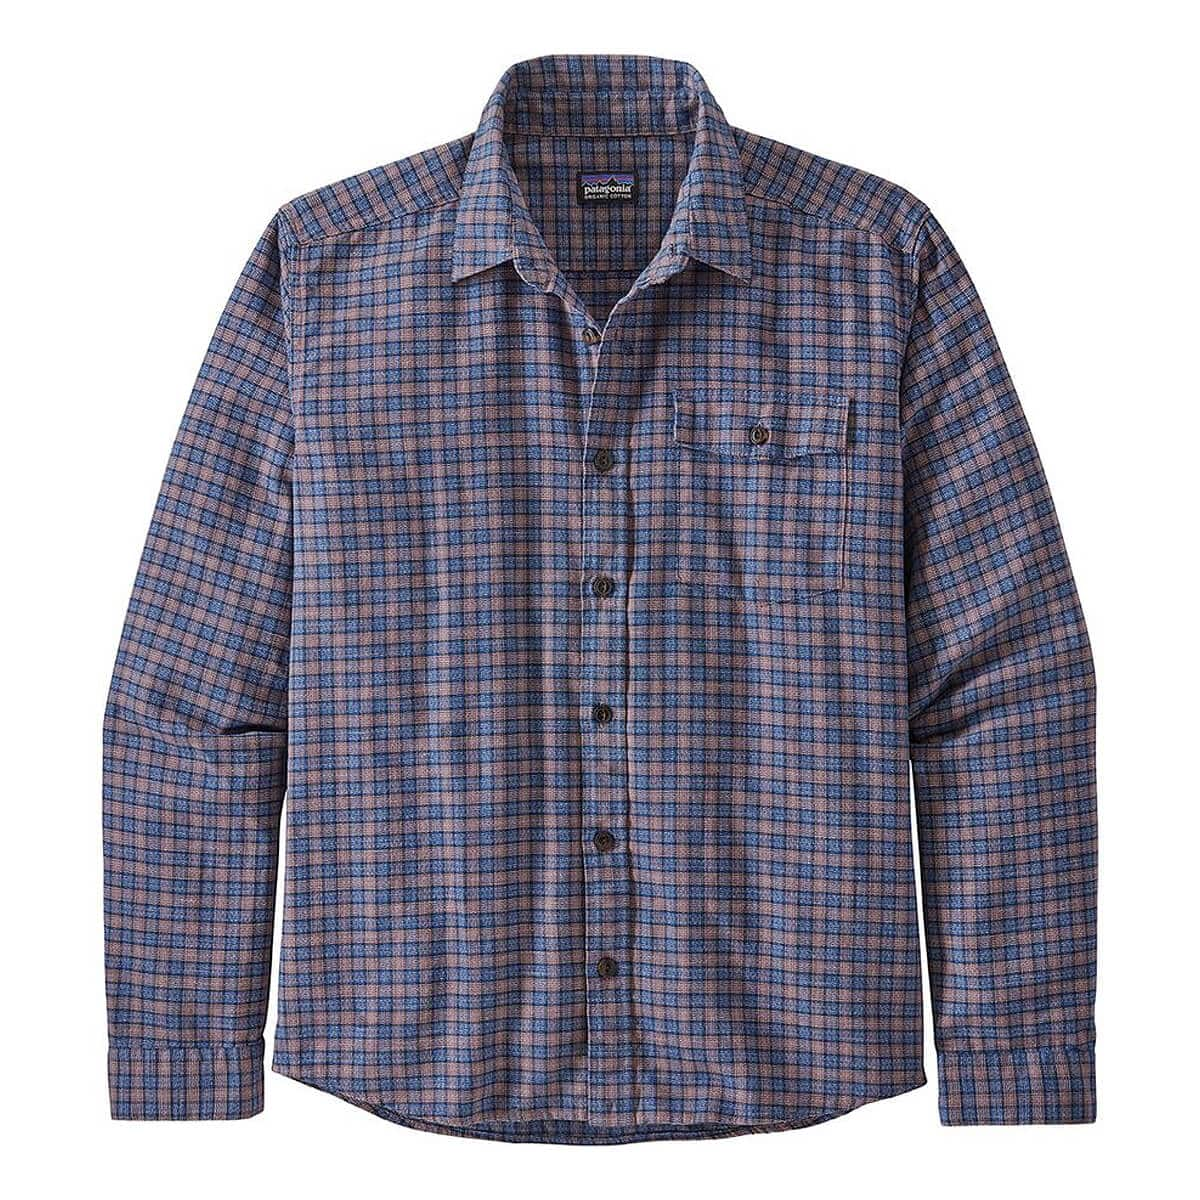 8. Patagonia Lightweight Fjord Flannel Shirt